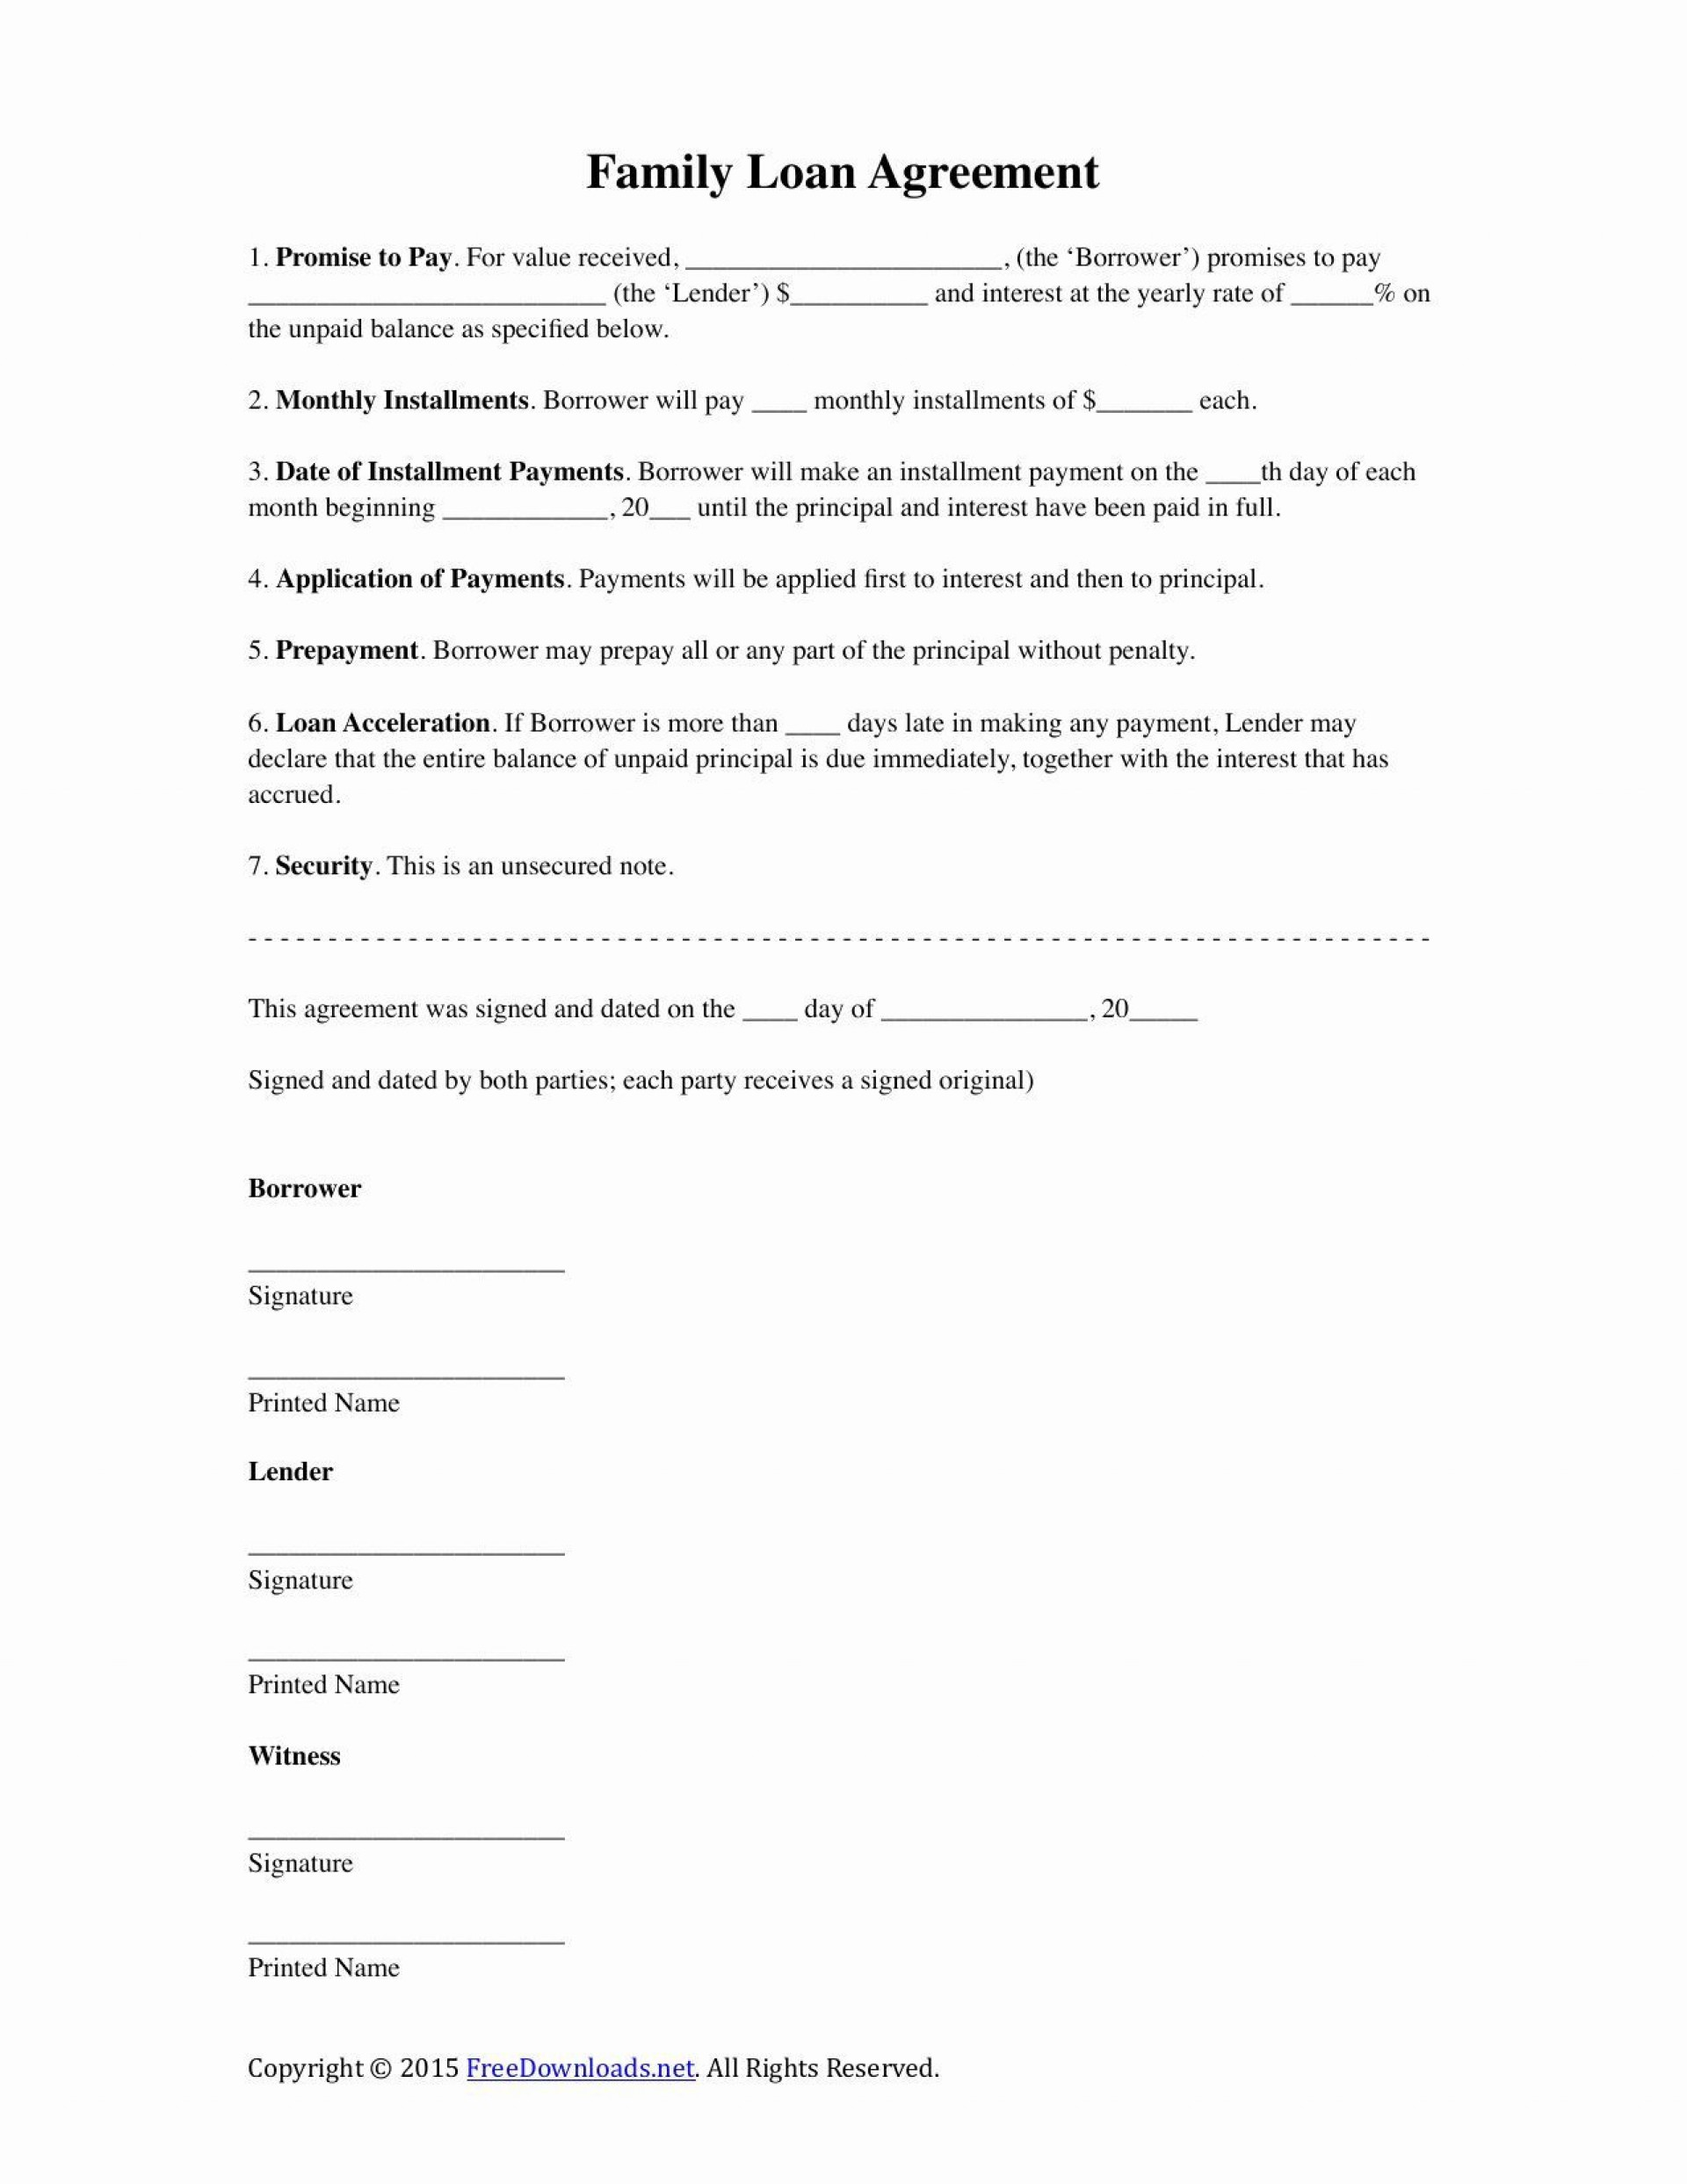 000 Outstanding Family Loan Agreement Template Free Uk High Def  Simple1920